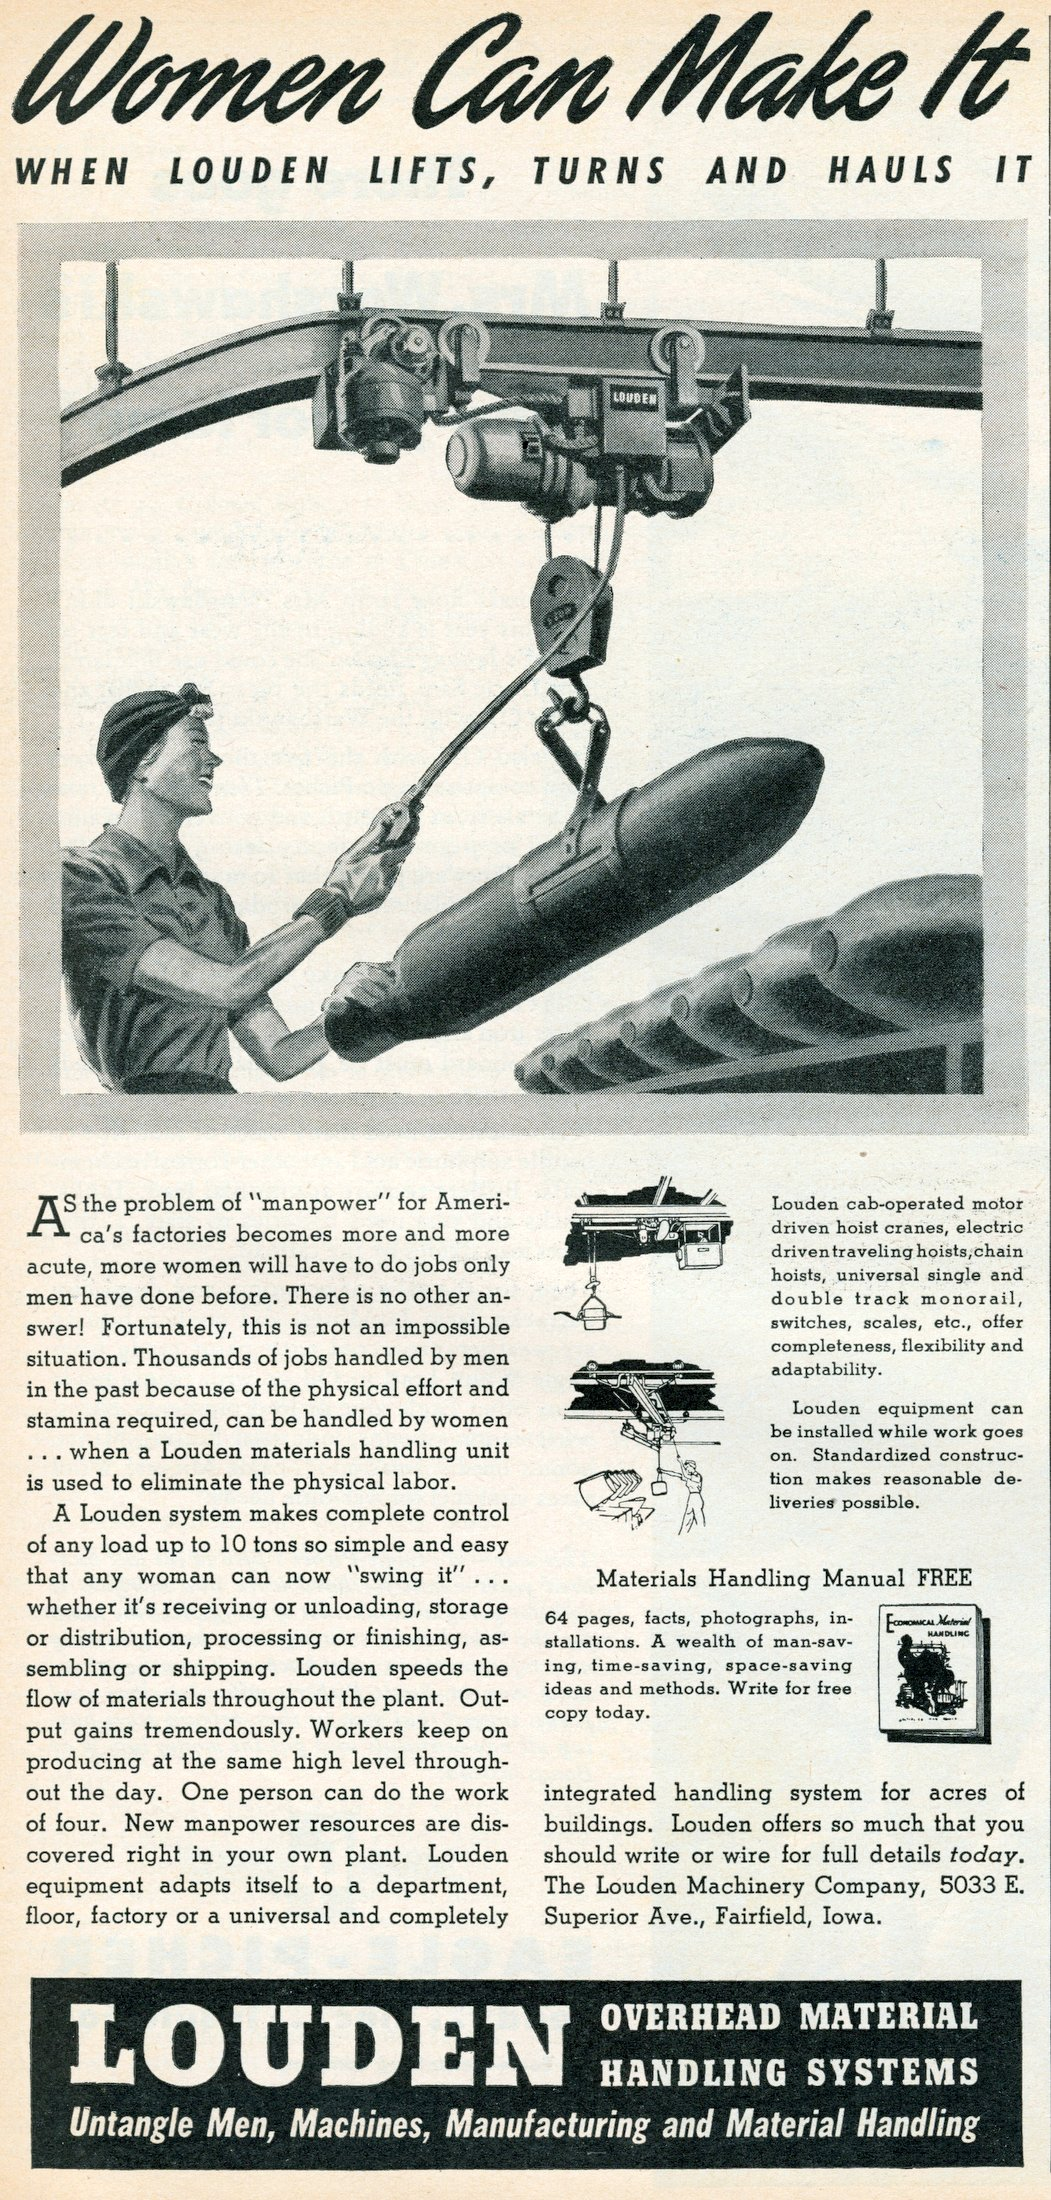 Women can make with Louden lifts it (1944)